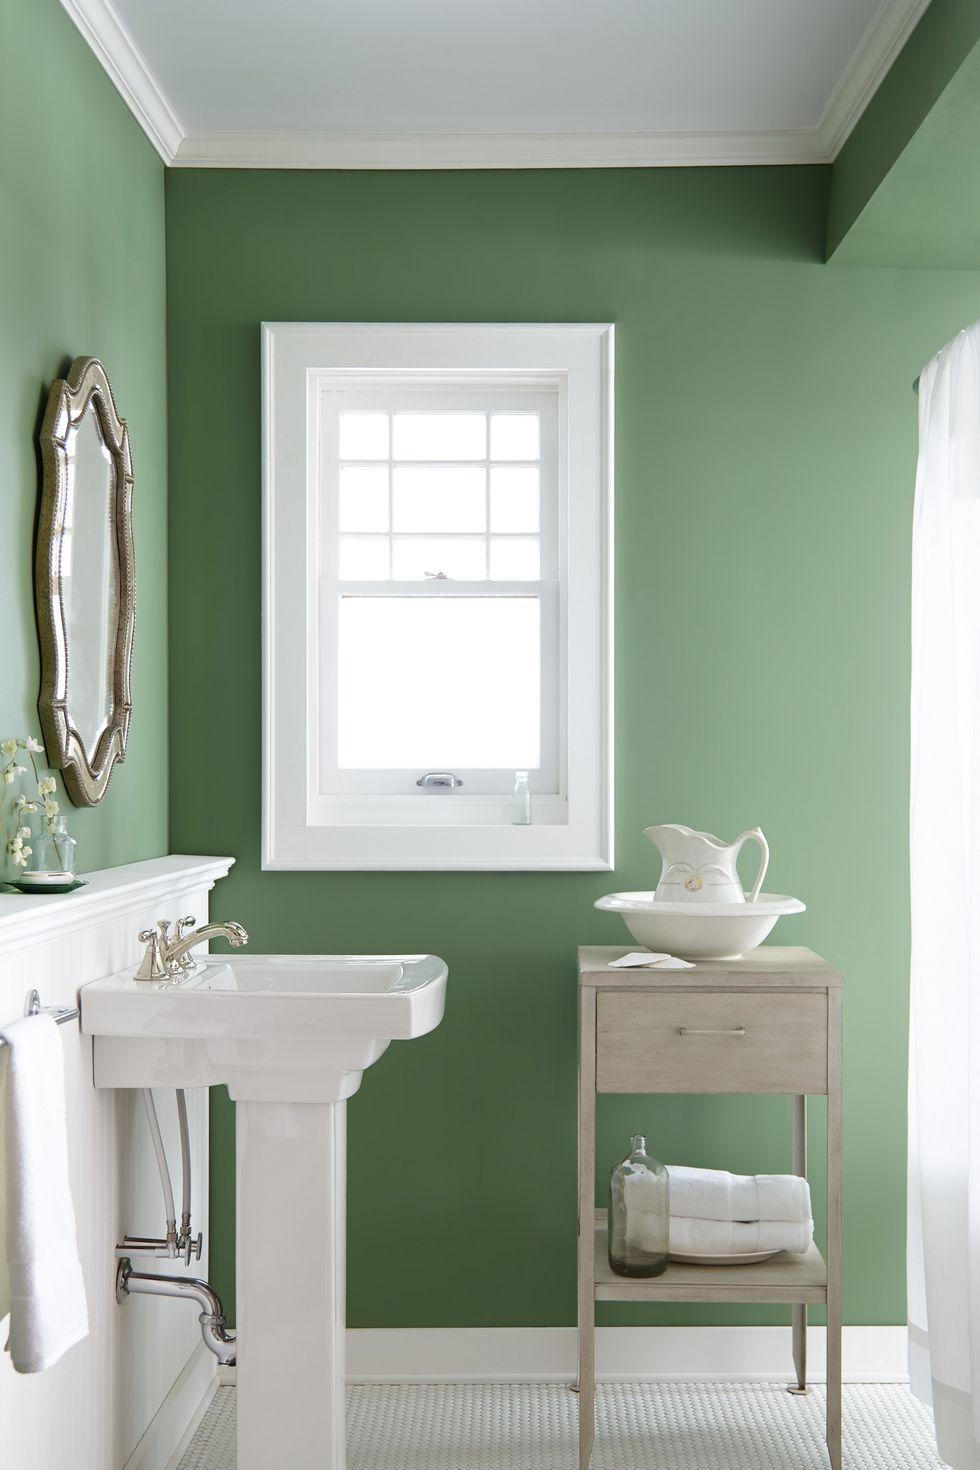 Love This Green Painting Color U0027Magnolia Greenu0027 For The Bathroom. Design  Guru And Fixer Upper Star Joanna Gaines Reveals Her Favorite Paint Color  U0027Magnolia ...